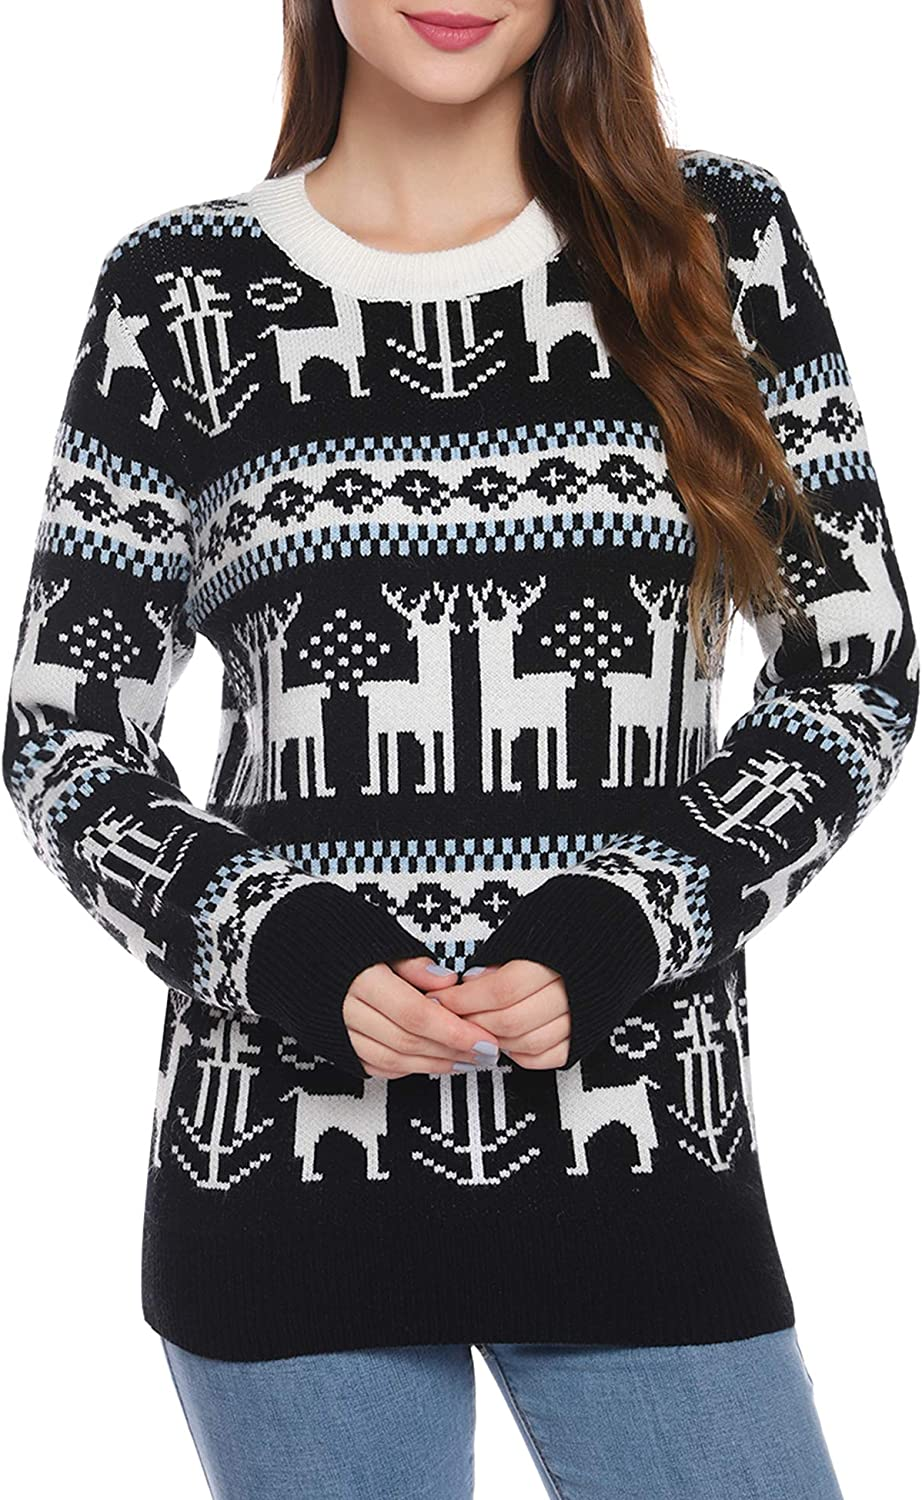 iClosam Women's Sweater Pullover Long Sleeve Reindeer Snowflakes Christmas Sweater